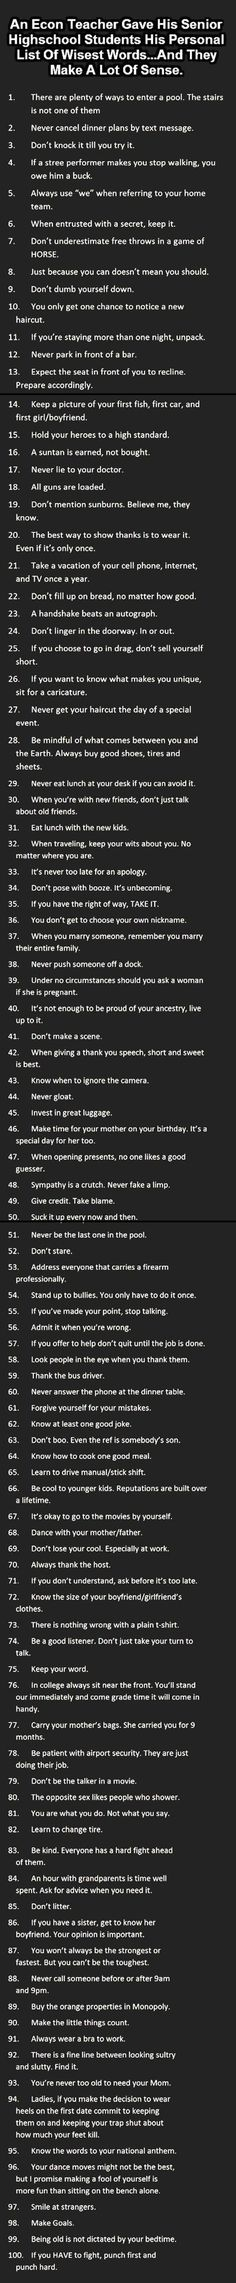 I wish someone had told me a lot of these as they certainly make sense.  Ah well, with age comes wisdom, right?